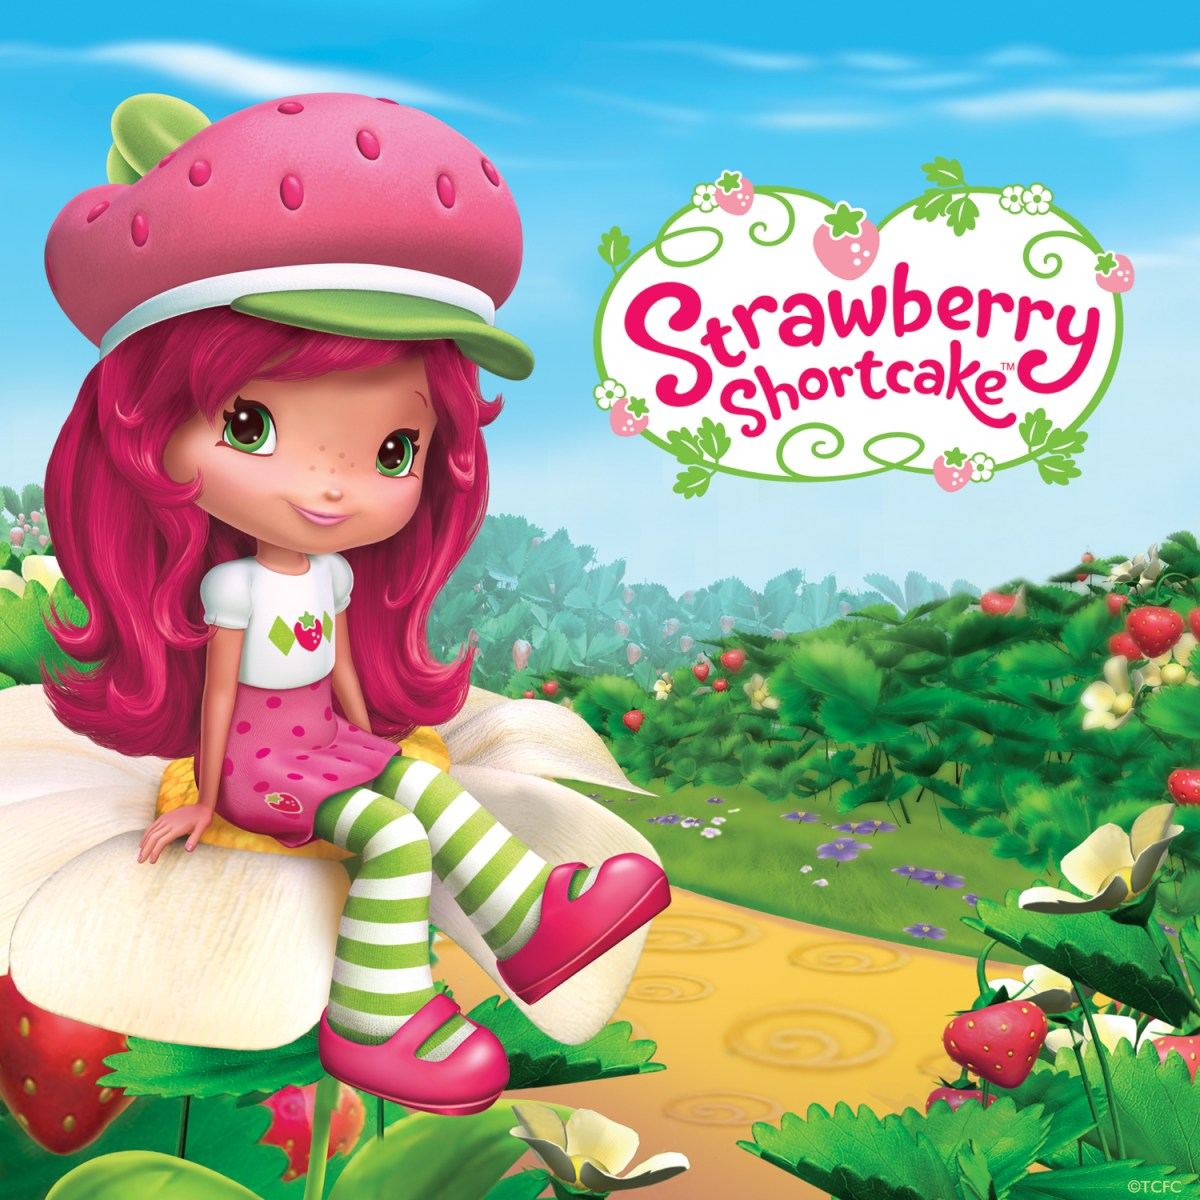 Strawberry Shortcake turns 30!